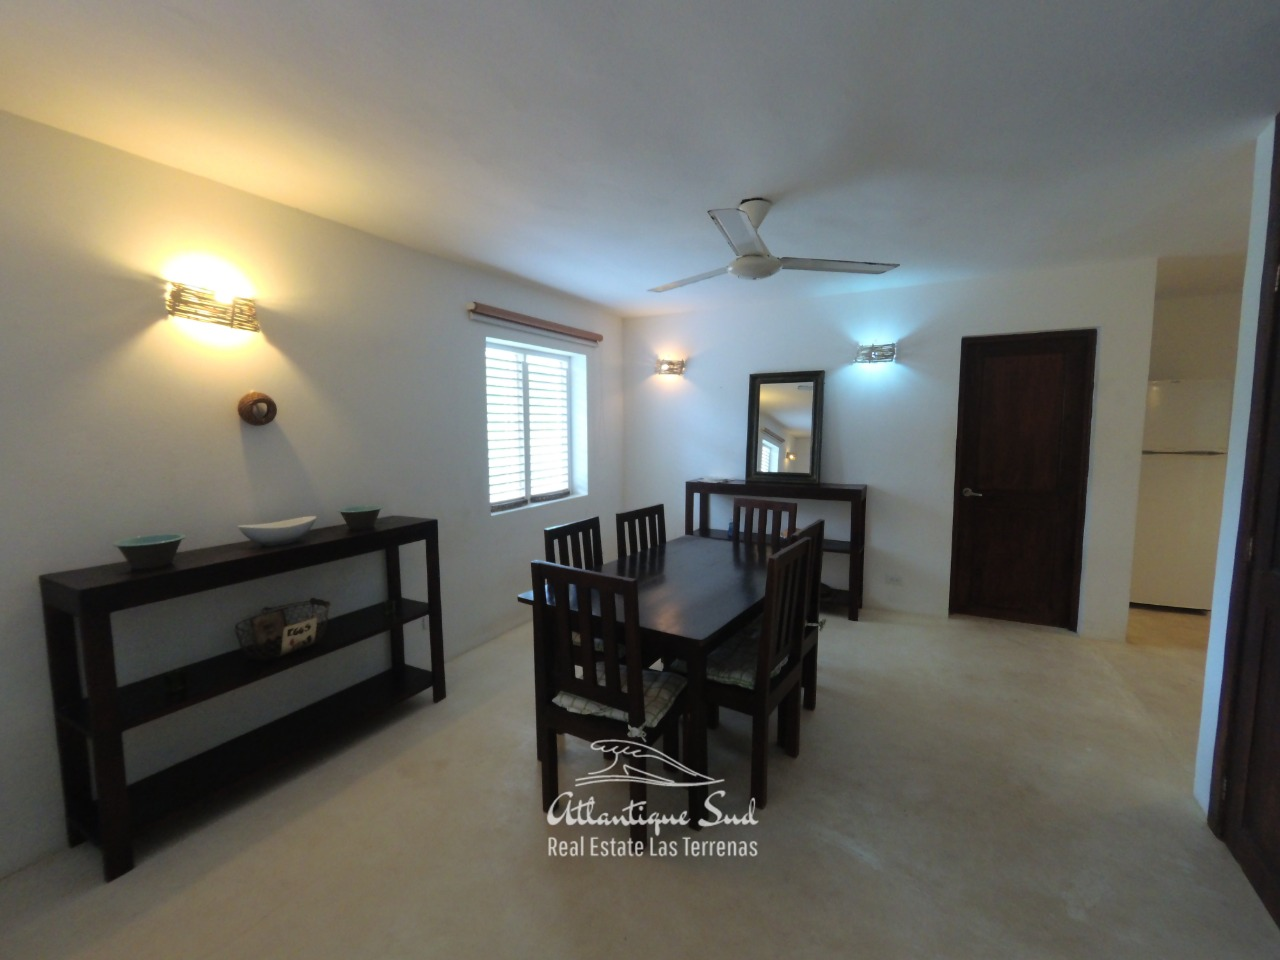 Villa for sale steps from the beach in las terrenas 17.jpeg